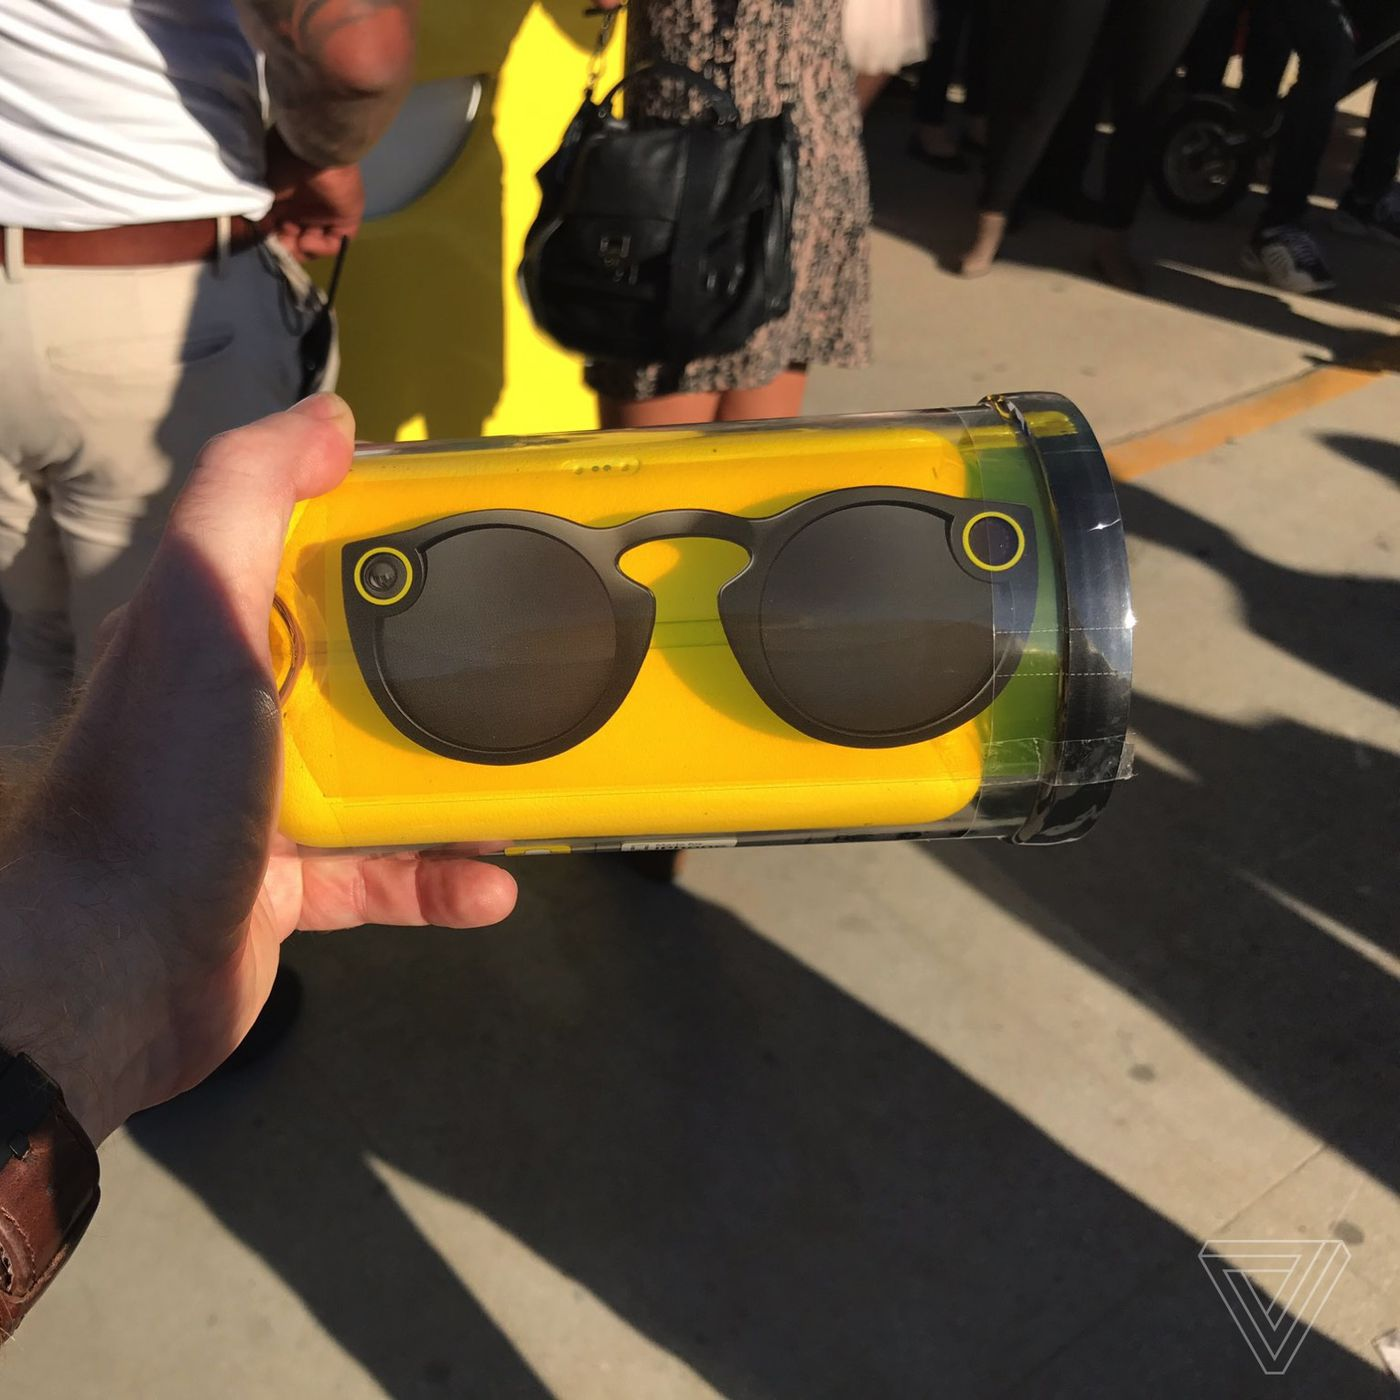 a1384f1a08 Snapchat Spectacles are going for hundreds of dollars on eBay - The Verge